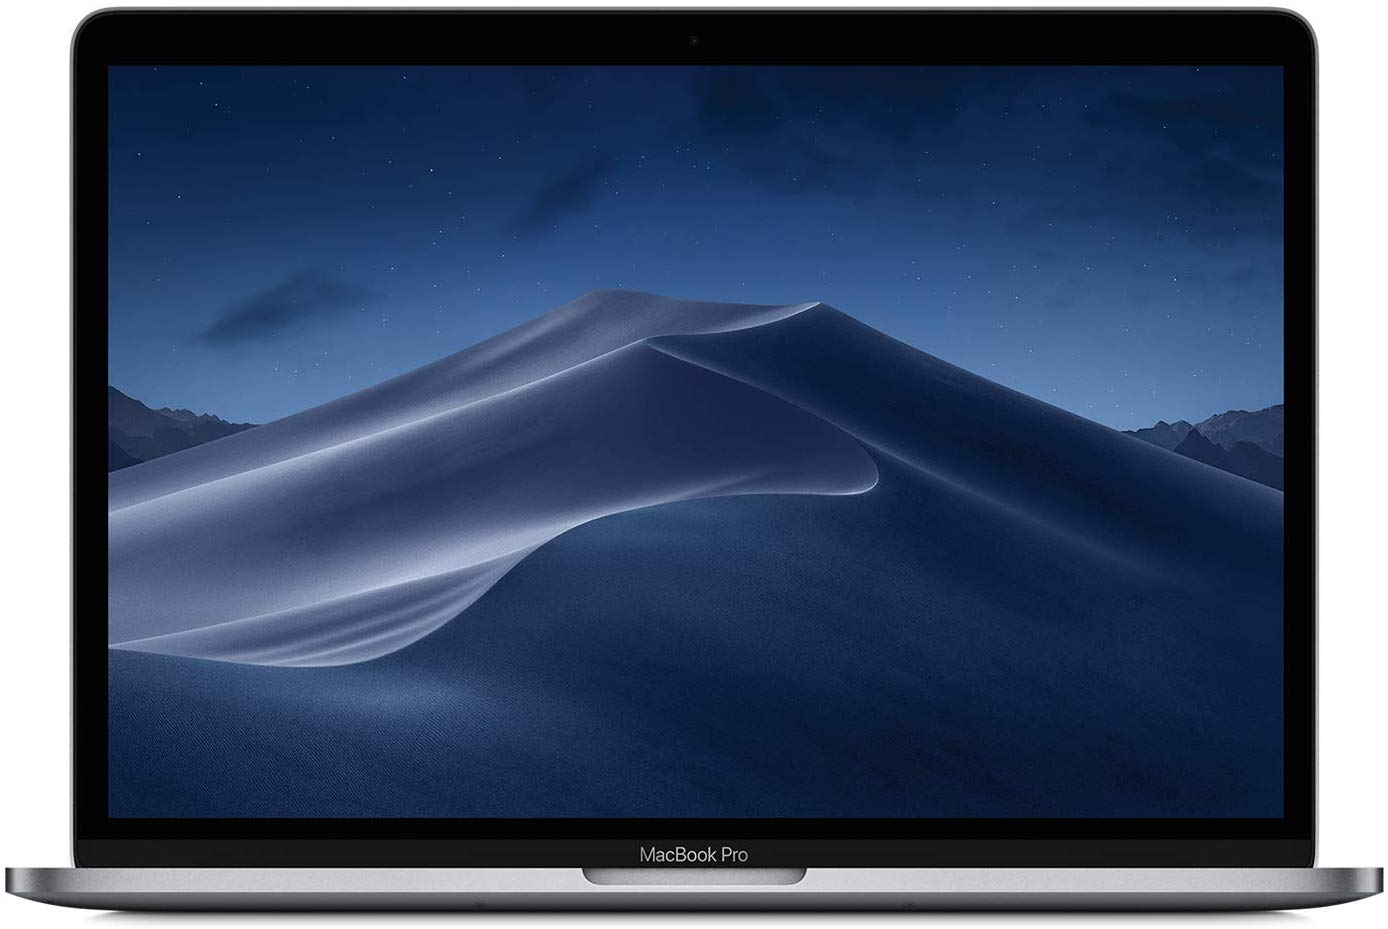 Apple MacBook Pro (13-inch Retina, Touch Bar, 2.3GHz Quad-Core Intel Core i5, 8GB RAM, 256GB SSD)